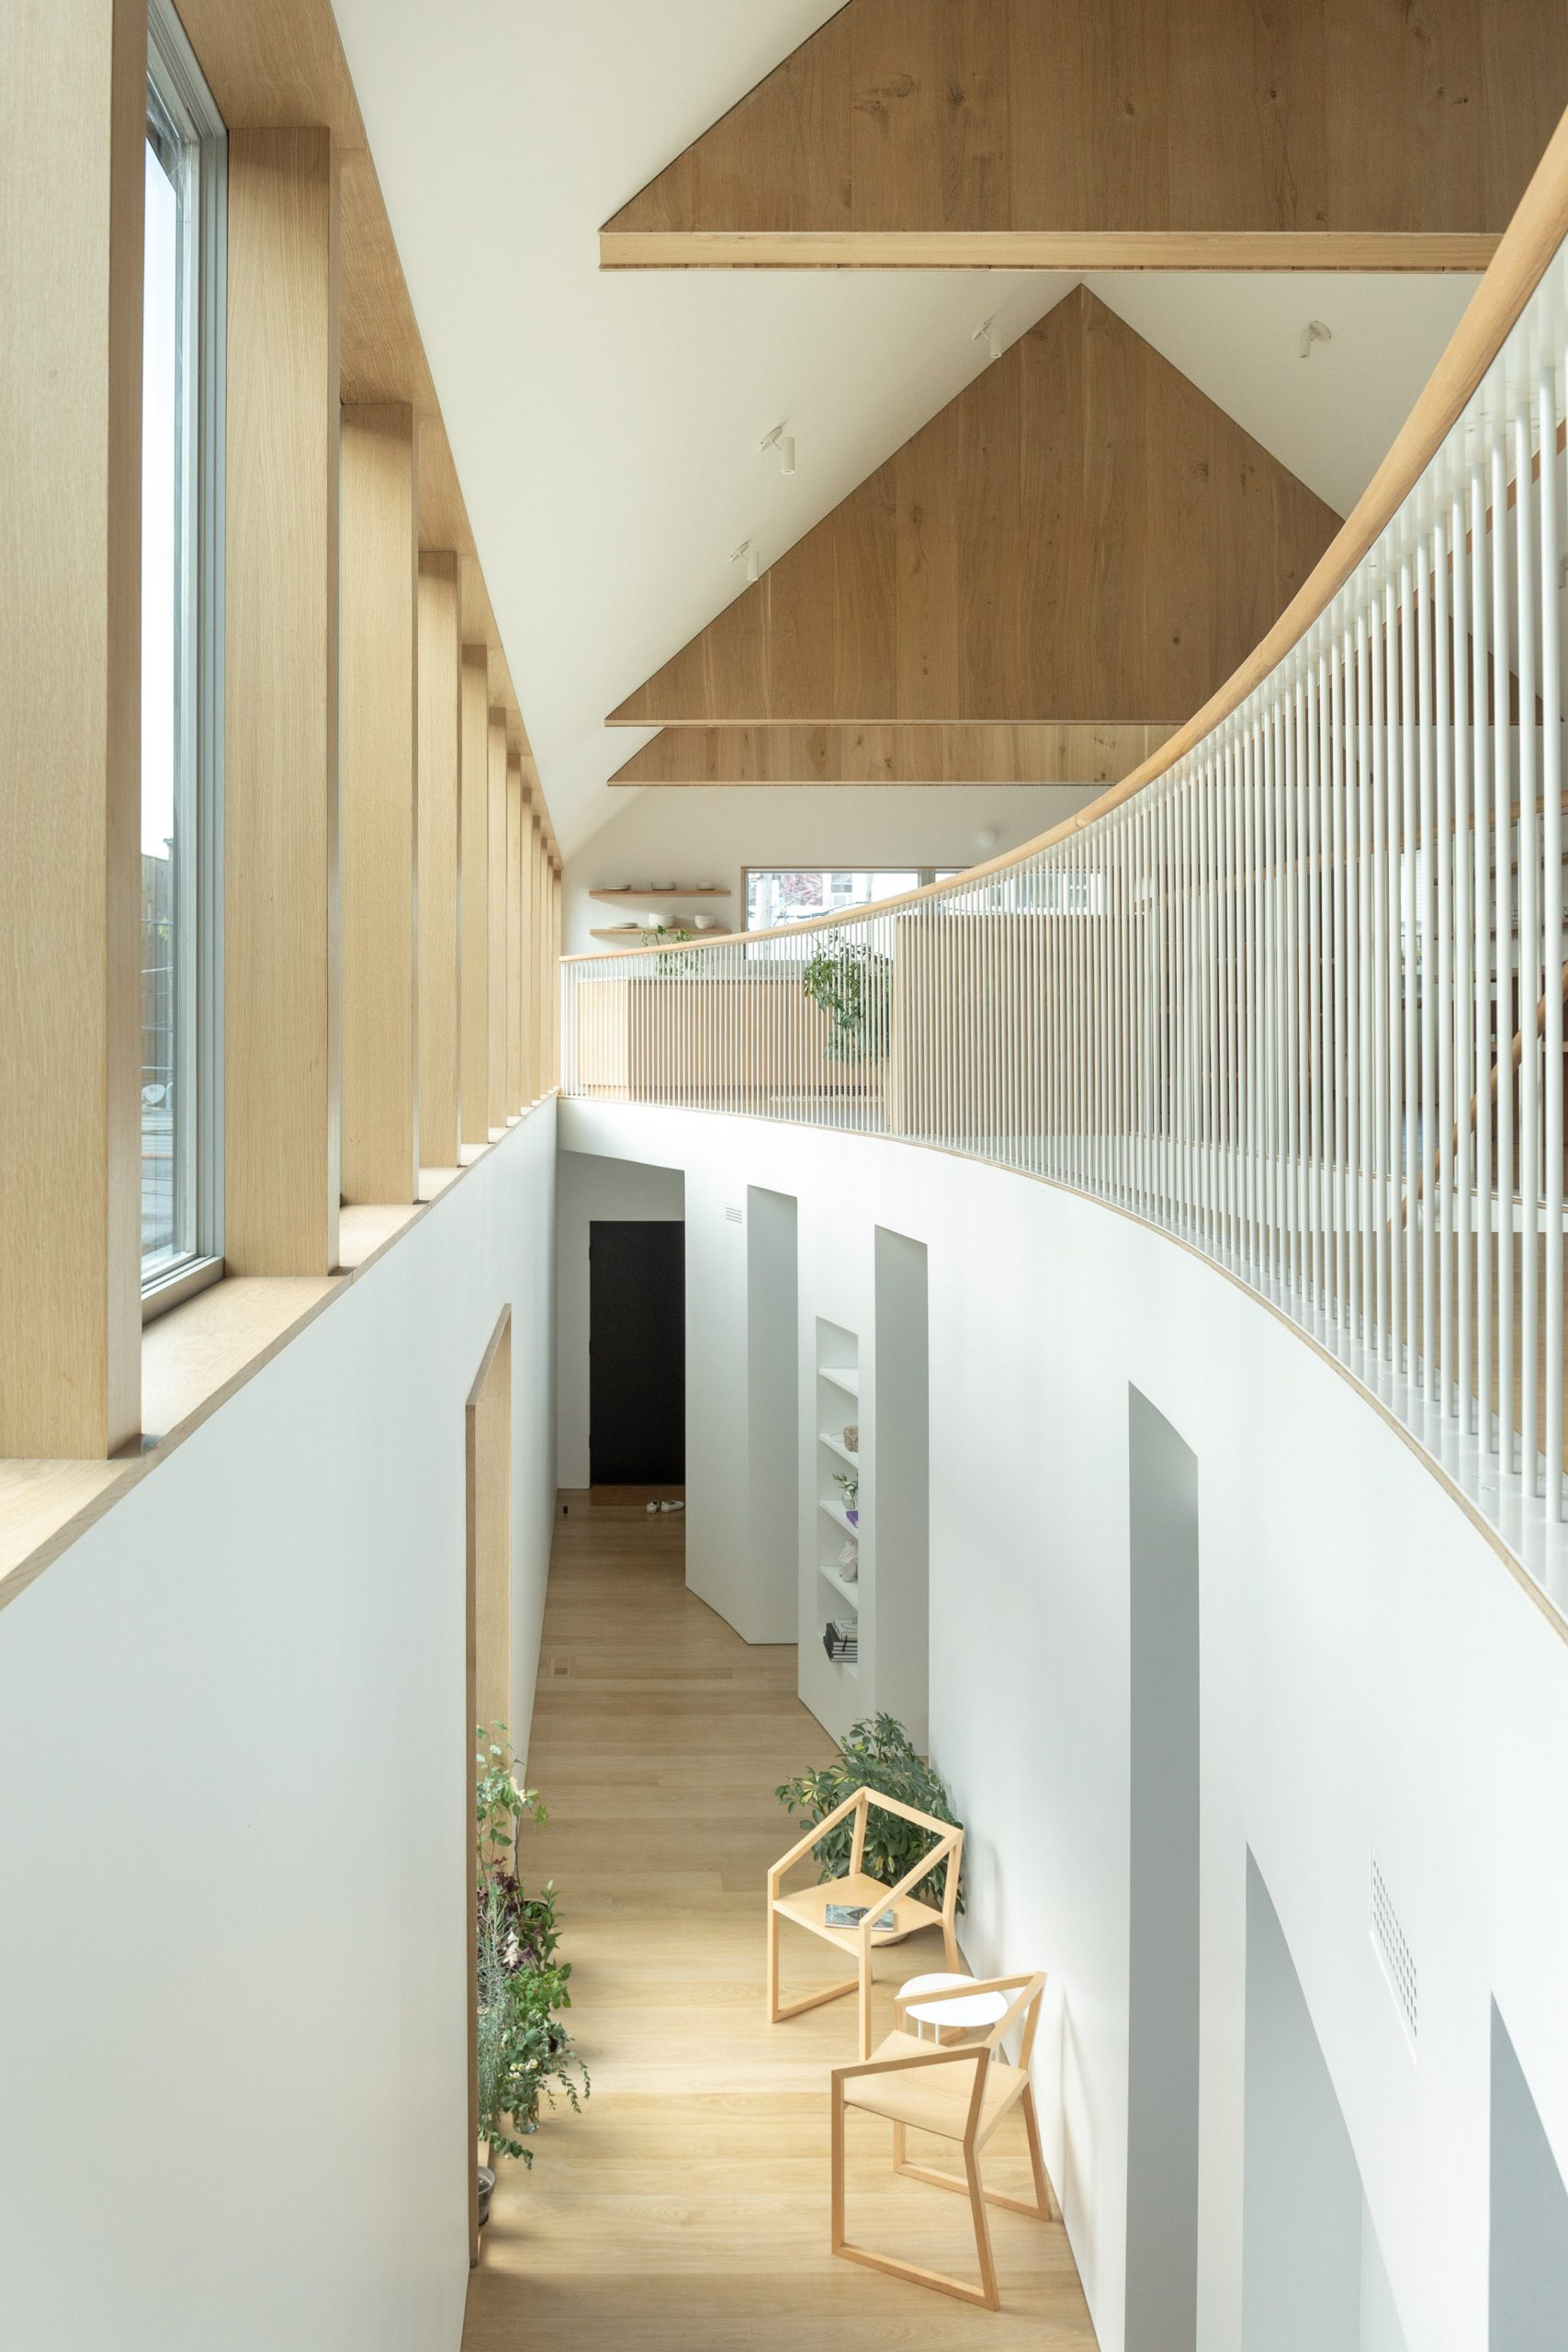 Curved atrium in Ardmore House by Kwong Von Glinow